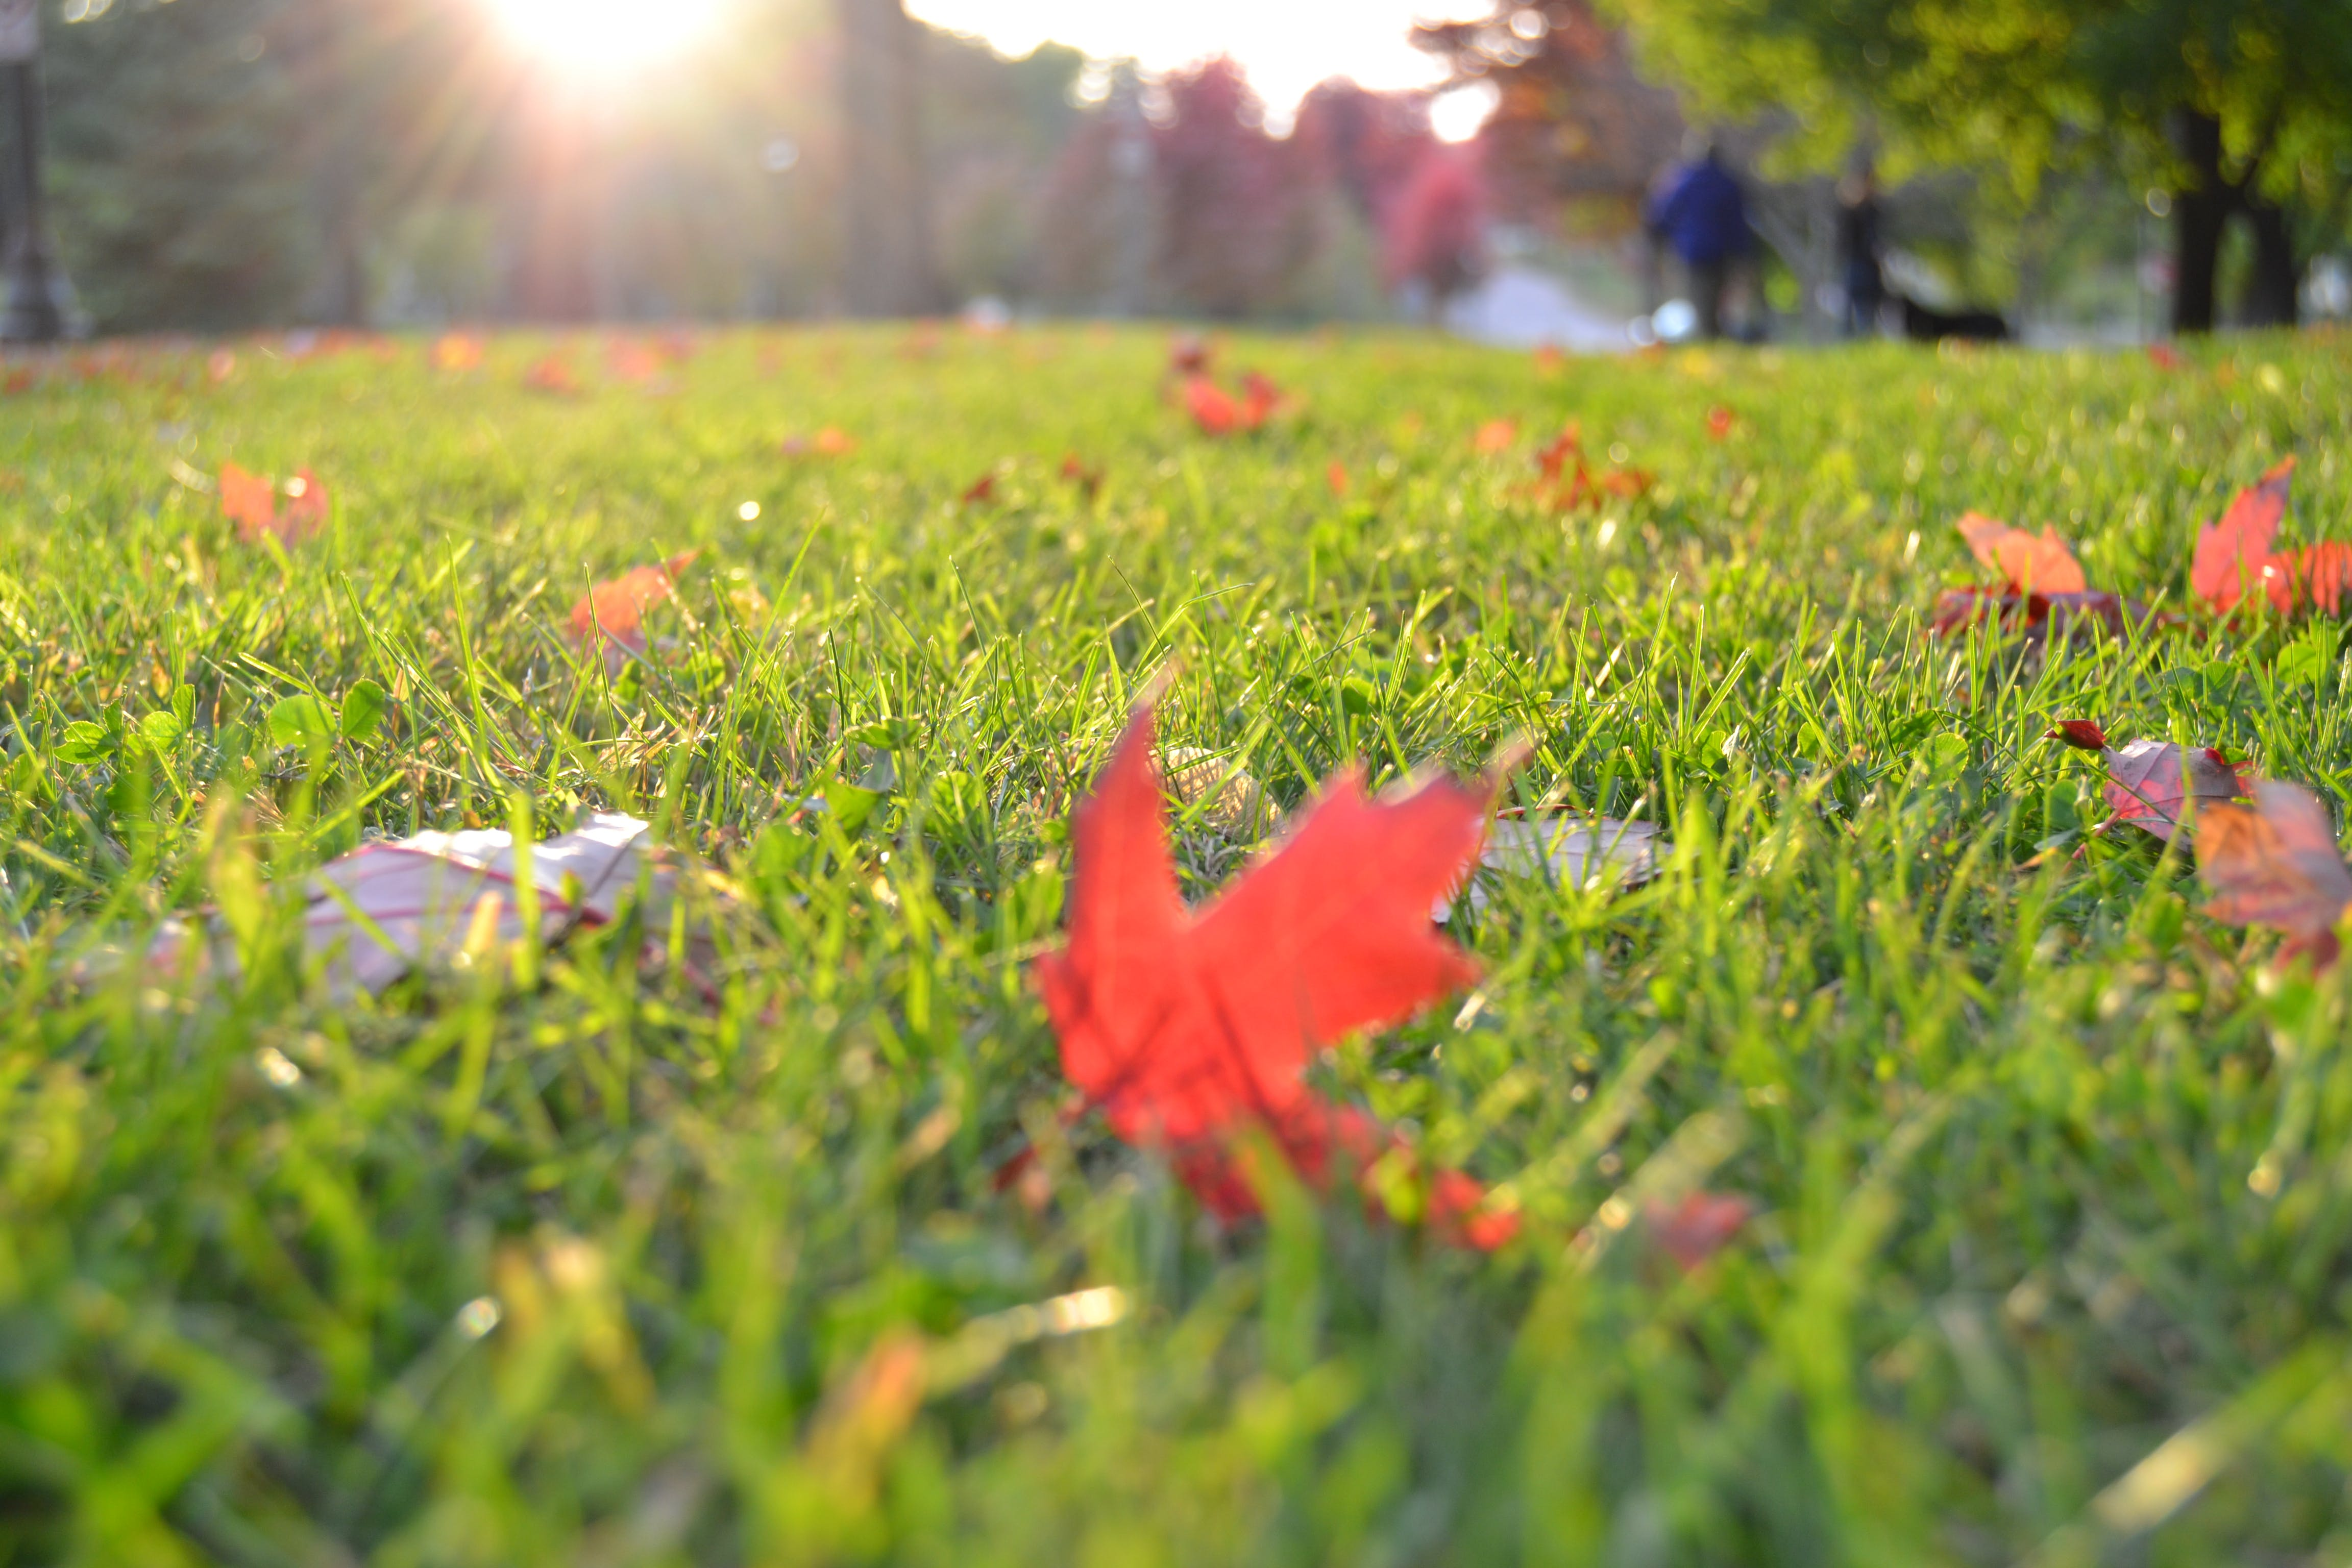 Brown Maple Leaf on Green Grass in Focus Photography